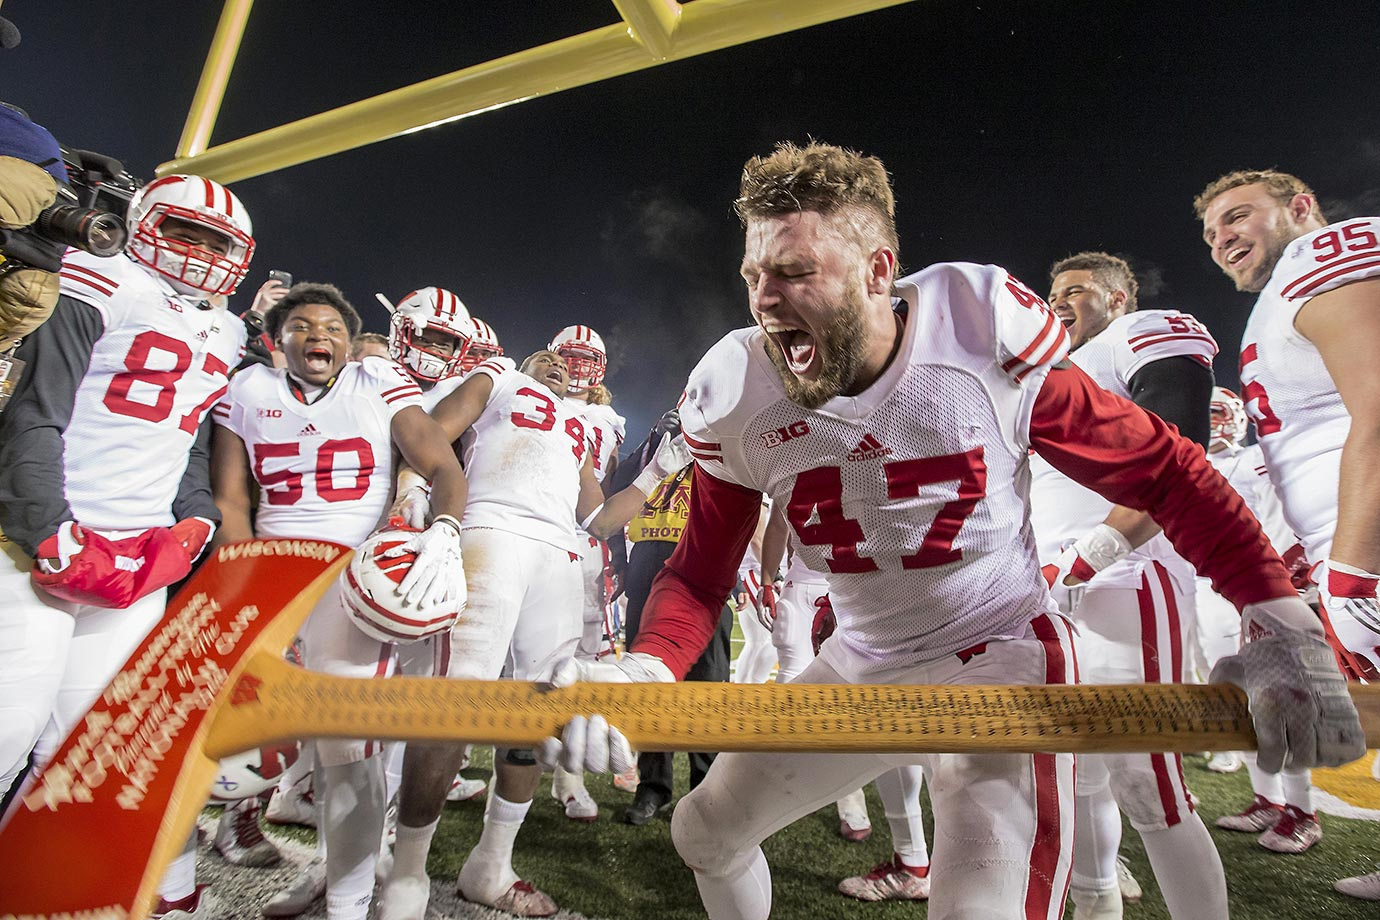 Vince Biegel of Wisconsin chops down the goal post after a game against the Minnesota Golden Gophers.